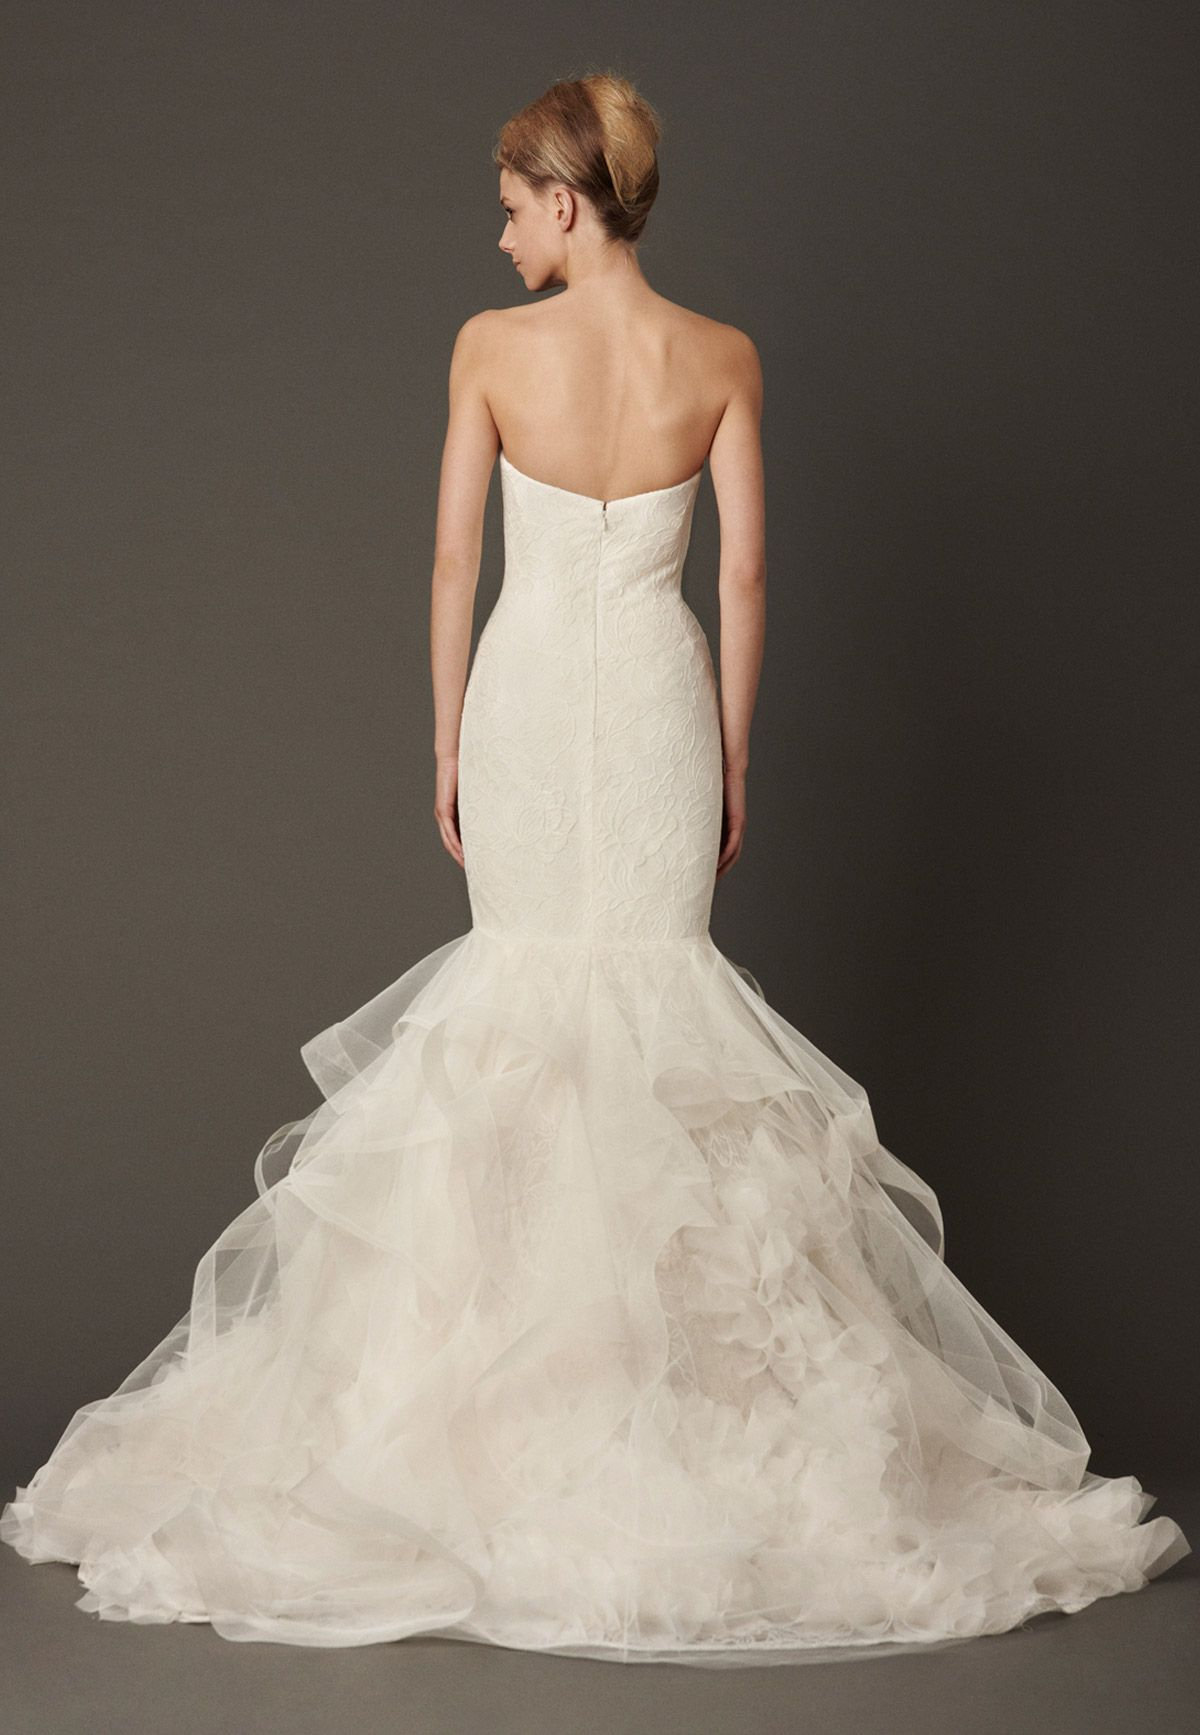 Presenting the Vera Wang Fall 2013 Bridal Collection. Browse, print, and share these wedding dresses.